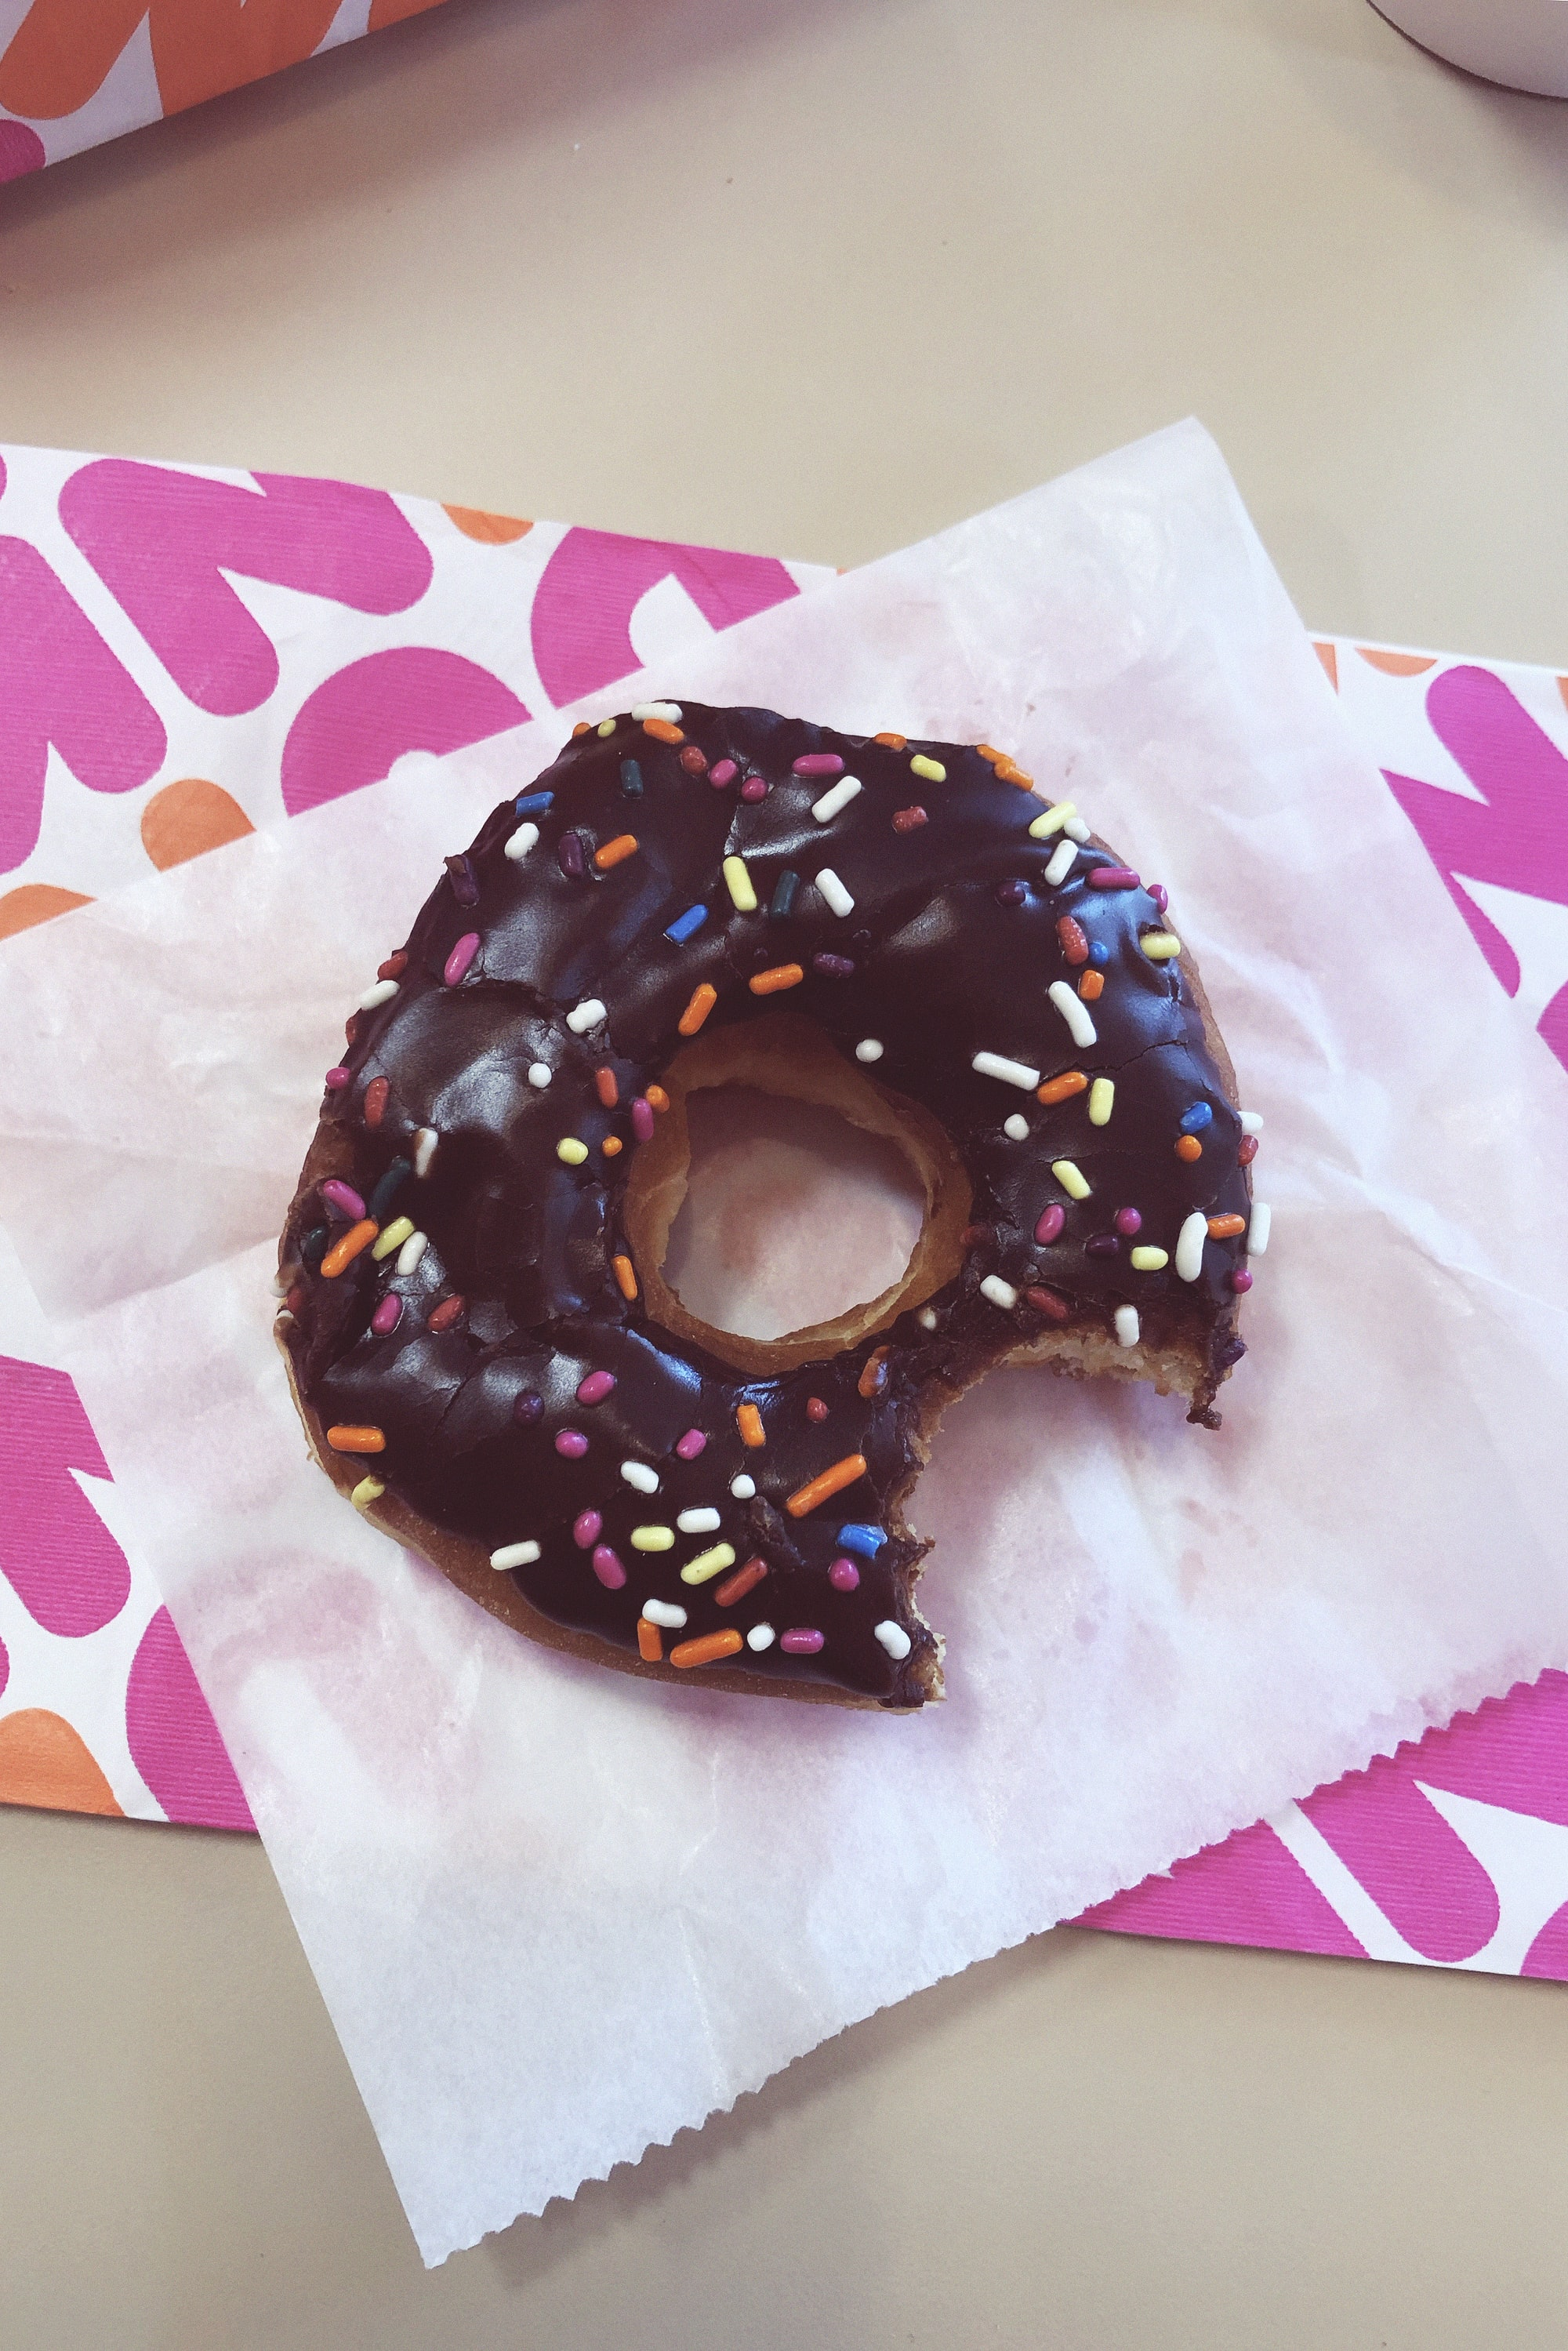 Weekly Drills 051 - #donut